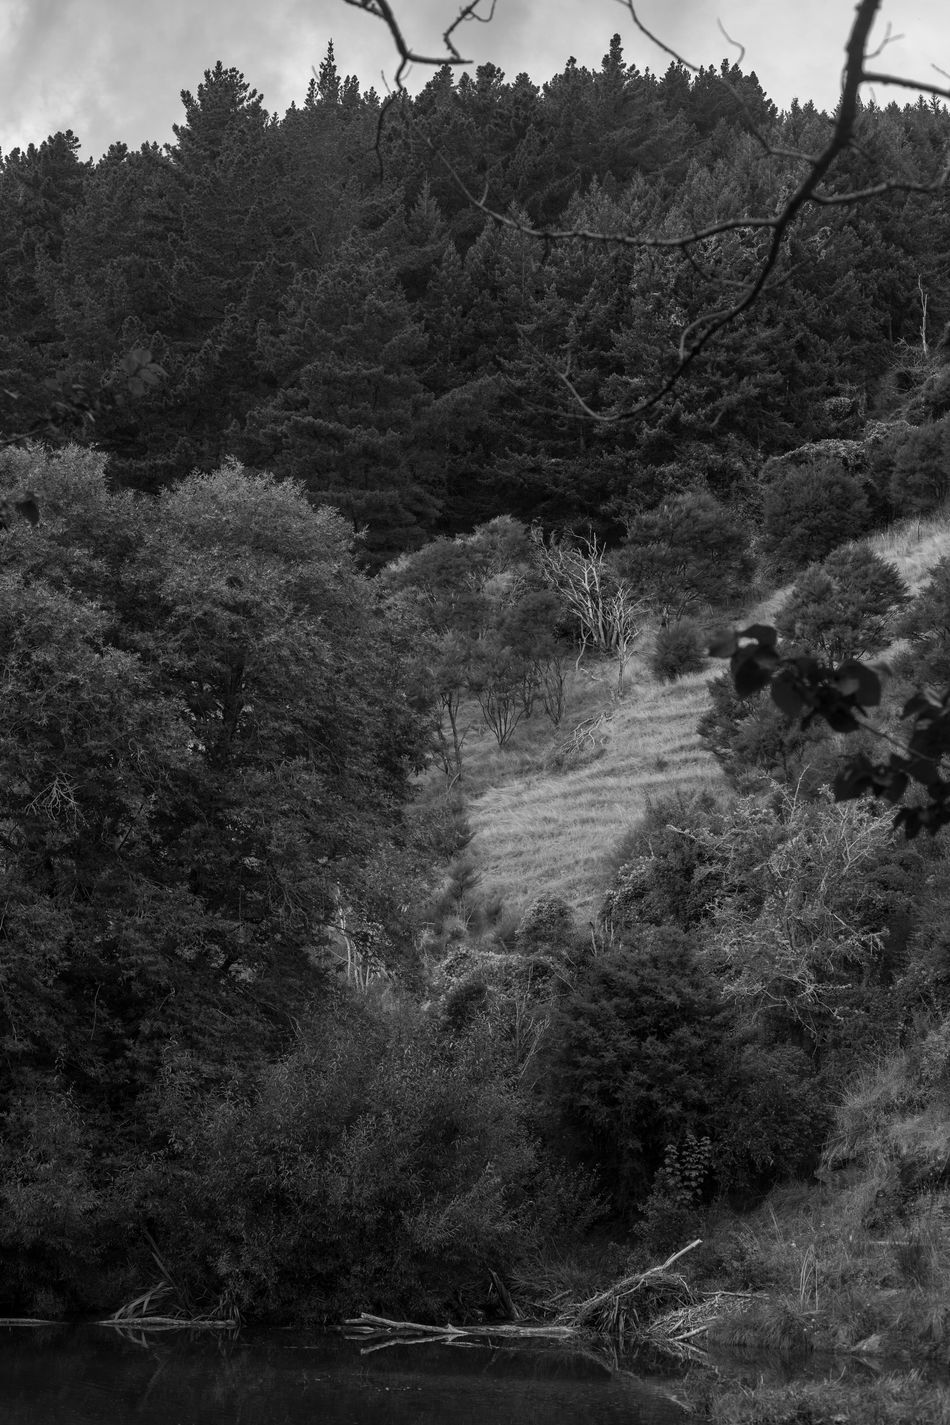 Scenery of Maitai Beauty In Nature Blackandwhite Bw_collection Calm Canon Day Forest Grass Growth Landscape Lush - Description Maitai Nature New Zealand No People Non-urban Scene Outdoors River Scenics Sky Tranquility Tree EyeEmNewHere